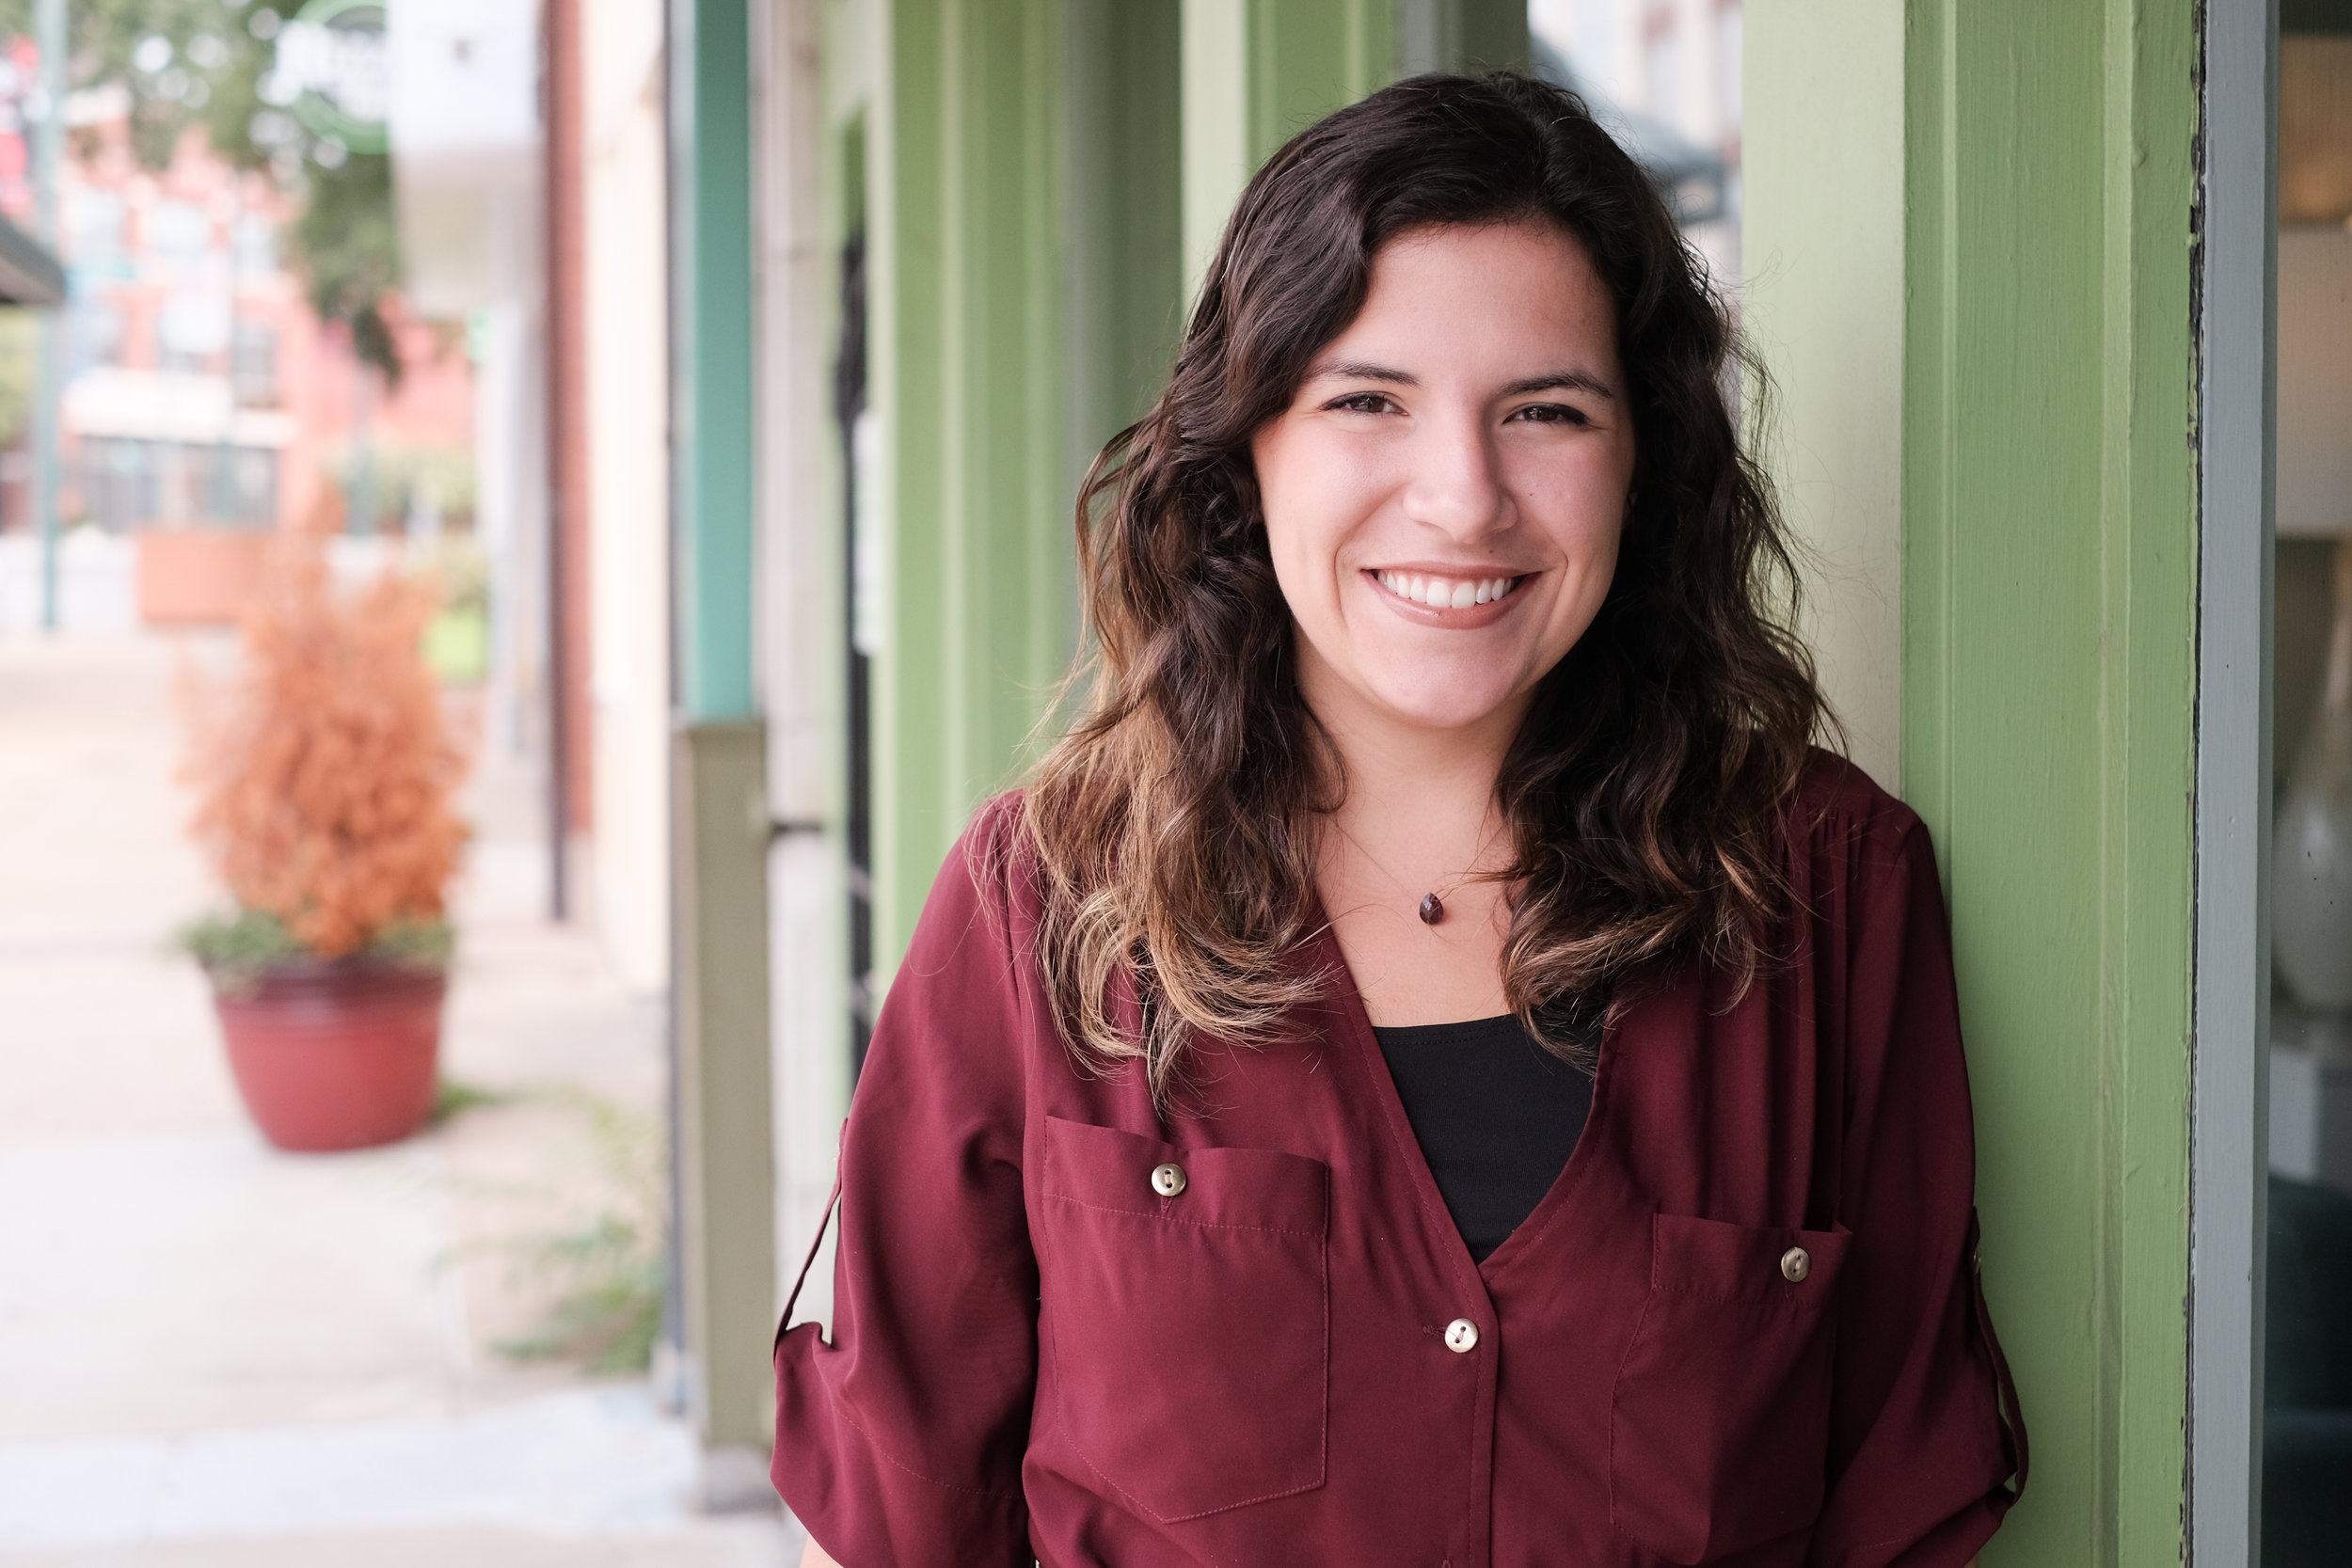 Maria Vescovo - OFFICE MANAGER & BOOKKEPPERMaria might have her head in the books at Hemline, but, as she says, she's never met a stranger and couldn't be more friendly to the folks who come to see us at the office. Born and raised in Memphis, Maria comes from a huge Italian family—say no more. As Hemline's office manager and bookkeeper, Maria keeps tabs on the staff, the supplies and client billings and record-keeping, among many other unsung duties. She came to Hemline from NAI Saig Company, where she was marketing director/office manager, and graduated from the University of Arkansas with a degree in business administration. She certainly offers the best of all worlds in Hemline's book.